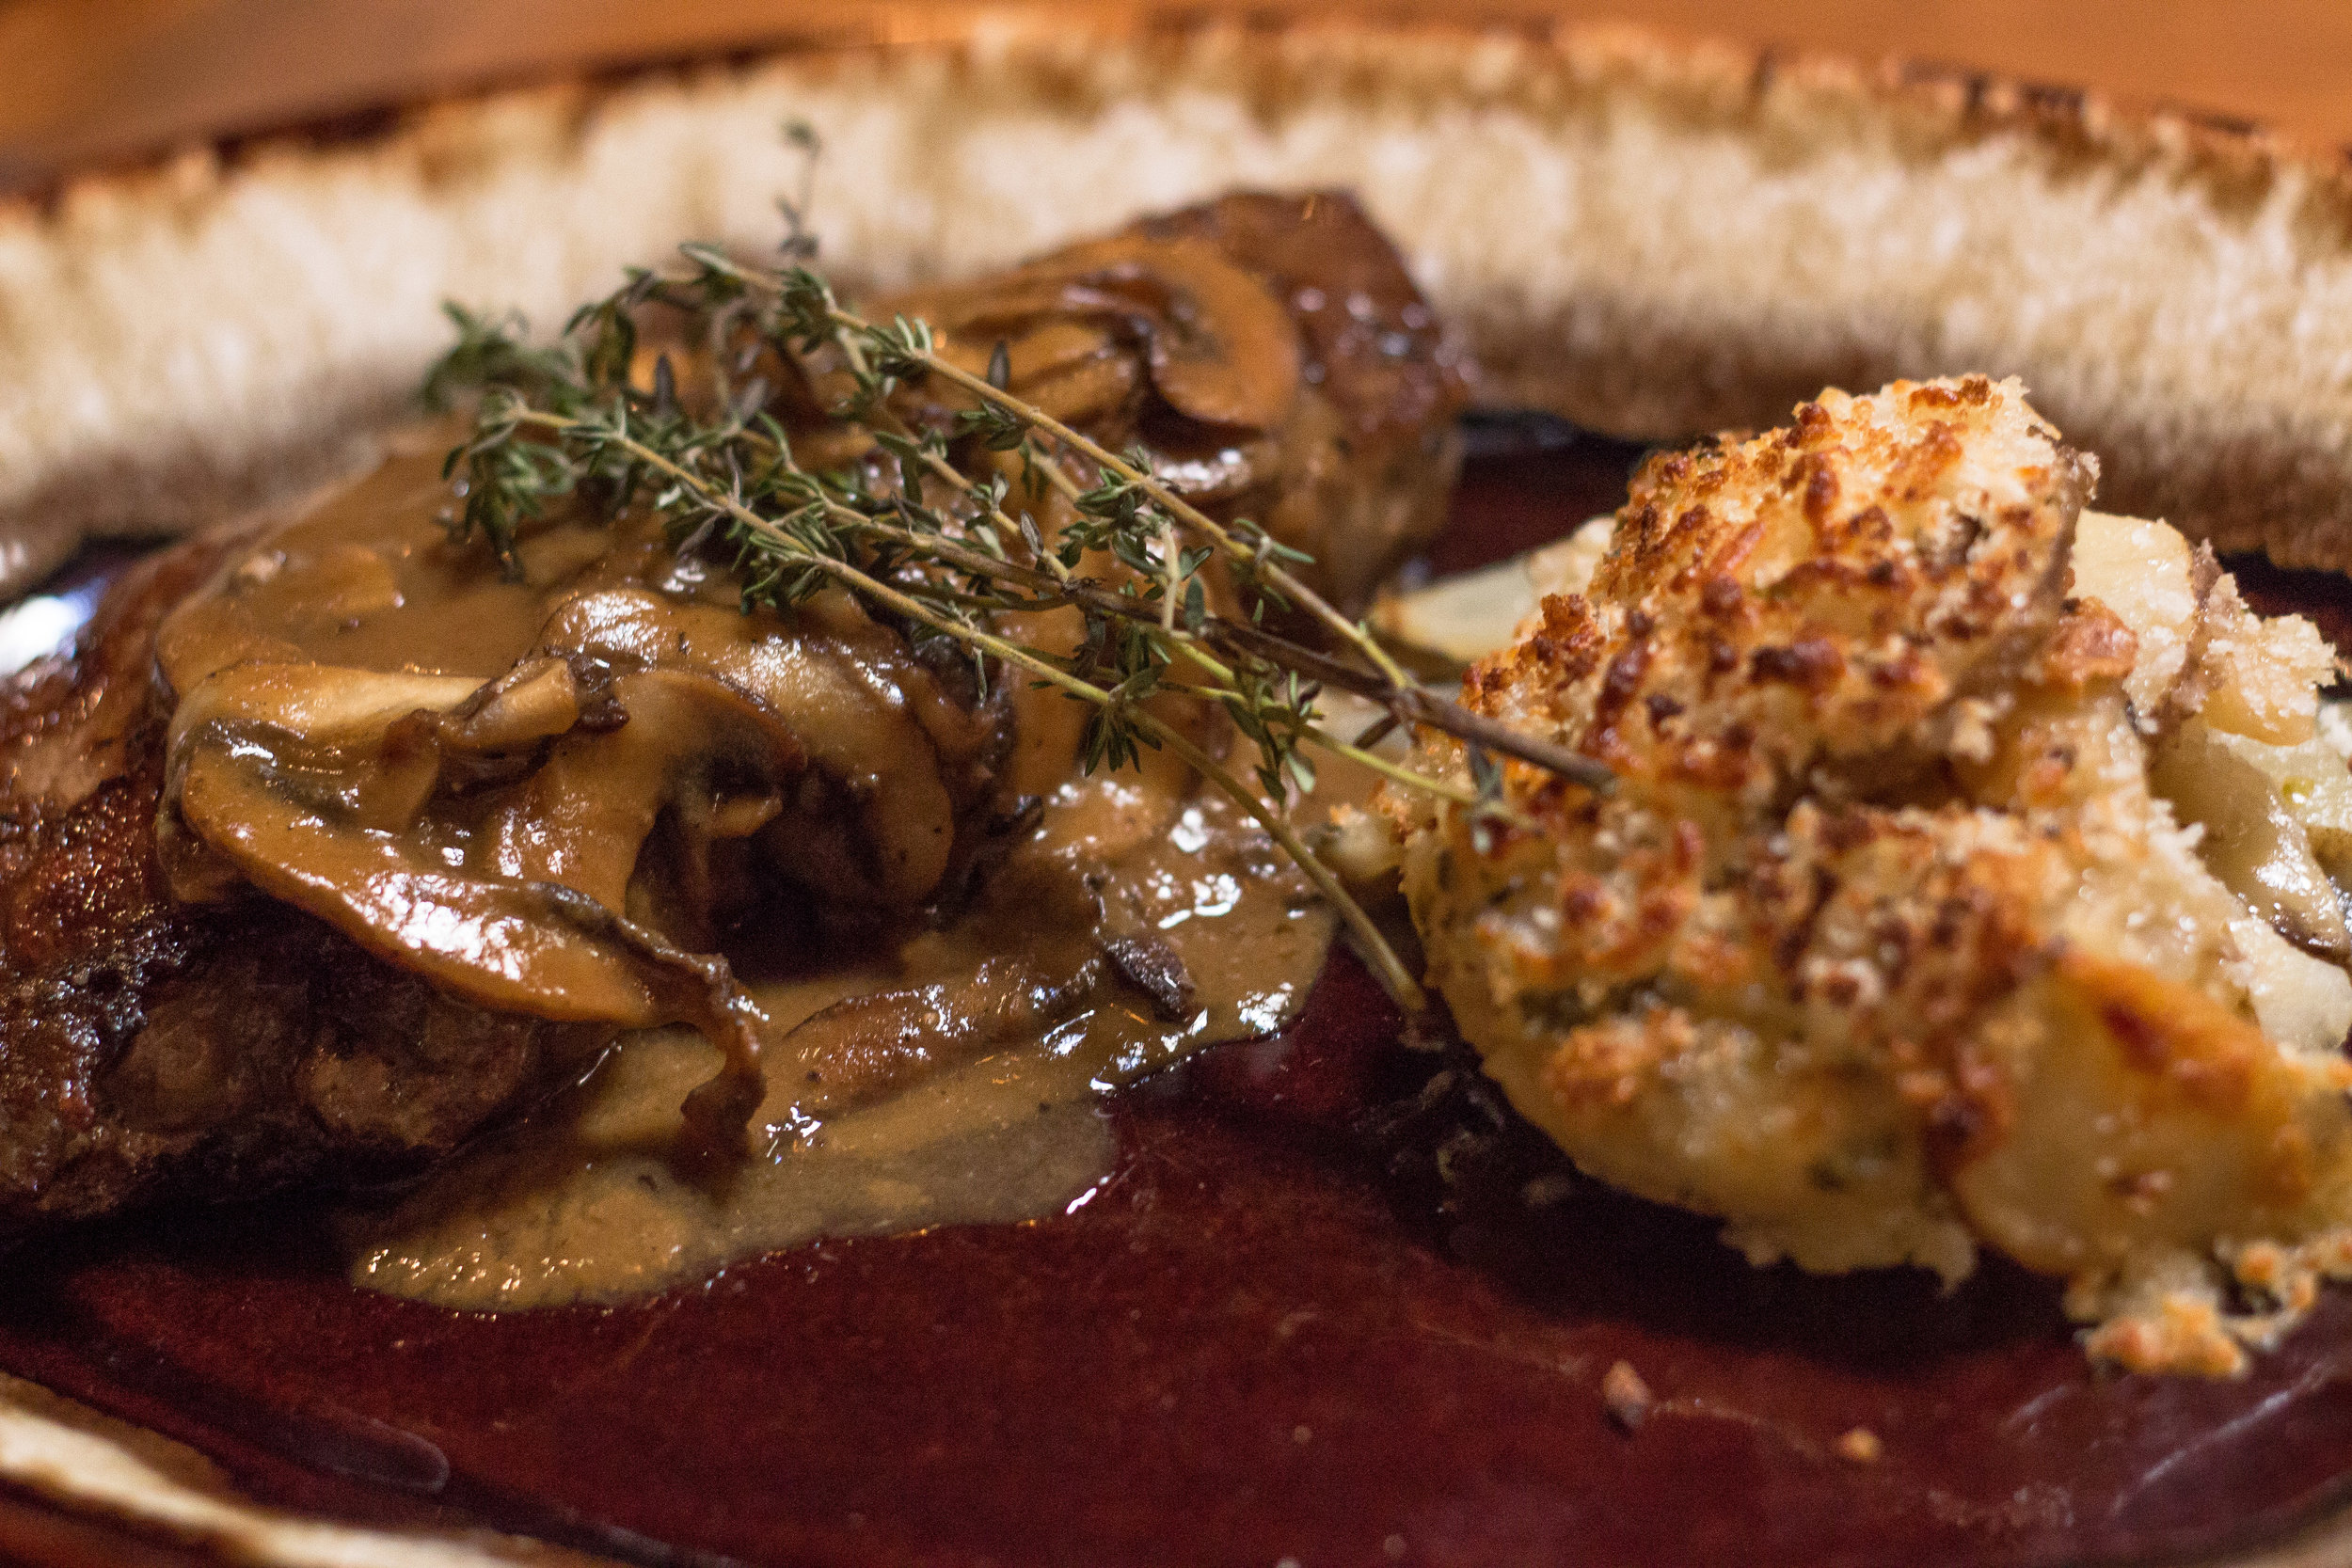 The Grass-Fed Strip Steak Diane elevates a classic dish, pairing it with boulangère potatoes that add a bit of spicy zest that will excite the taste buds.